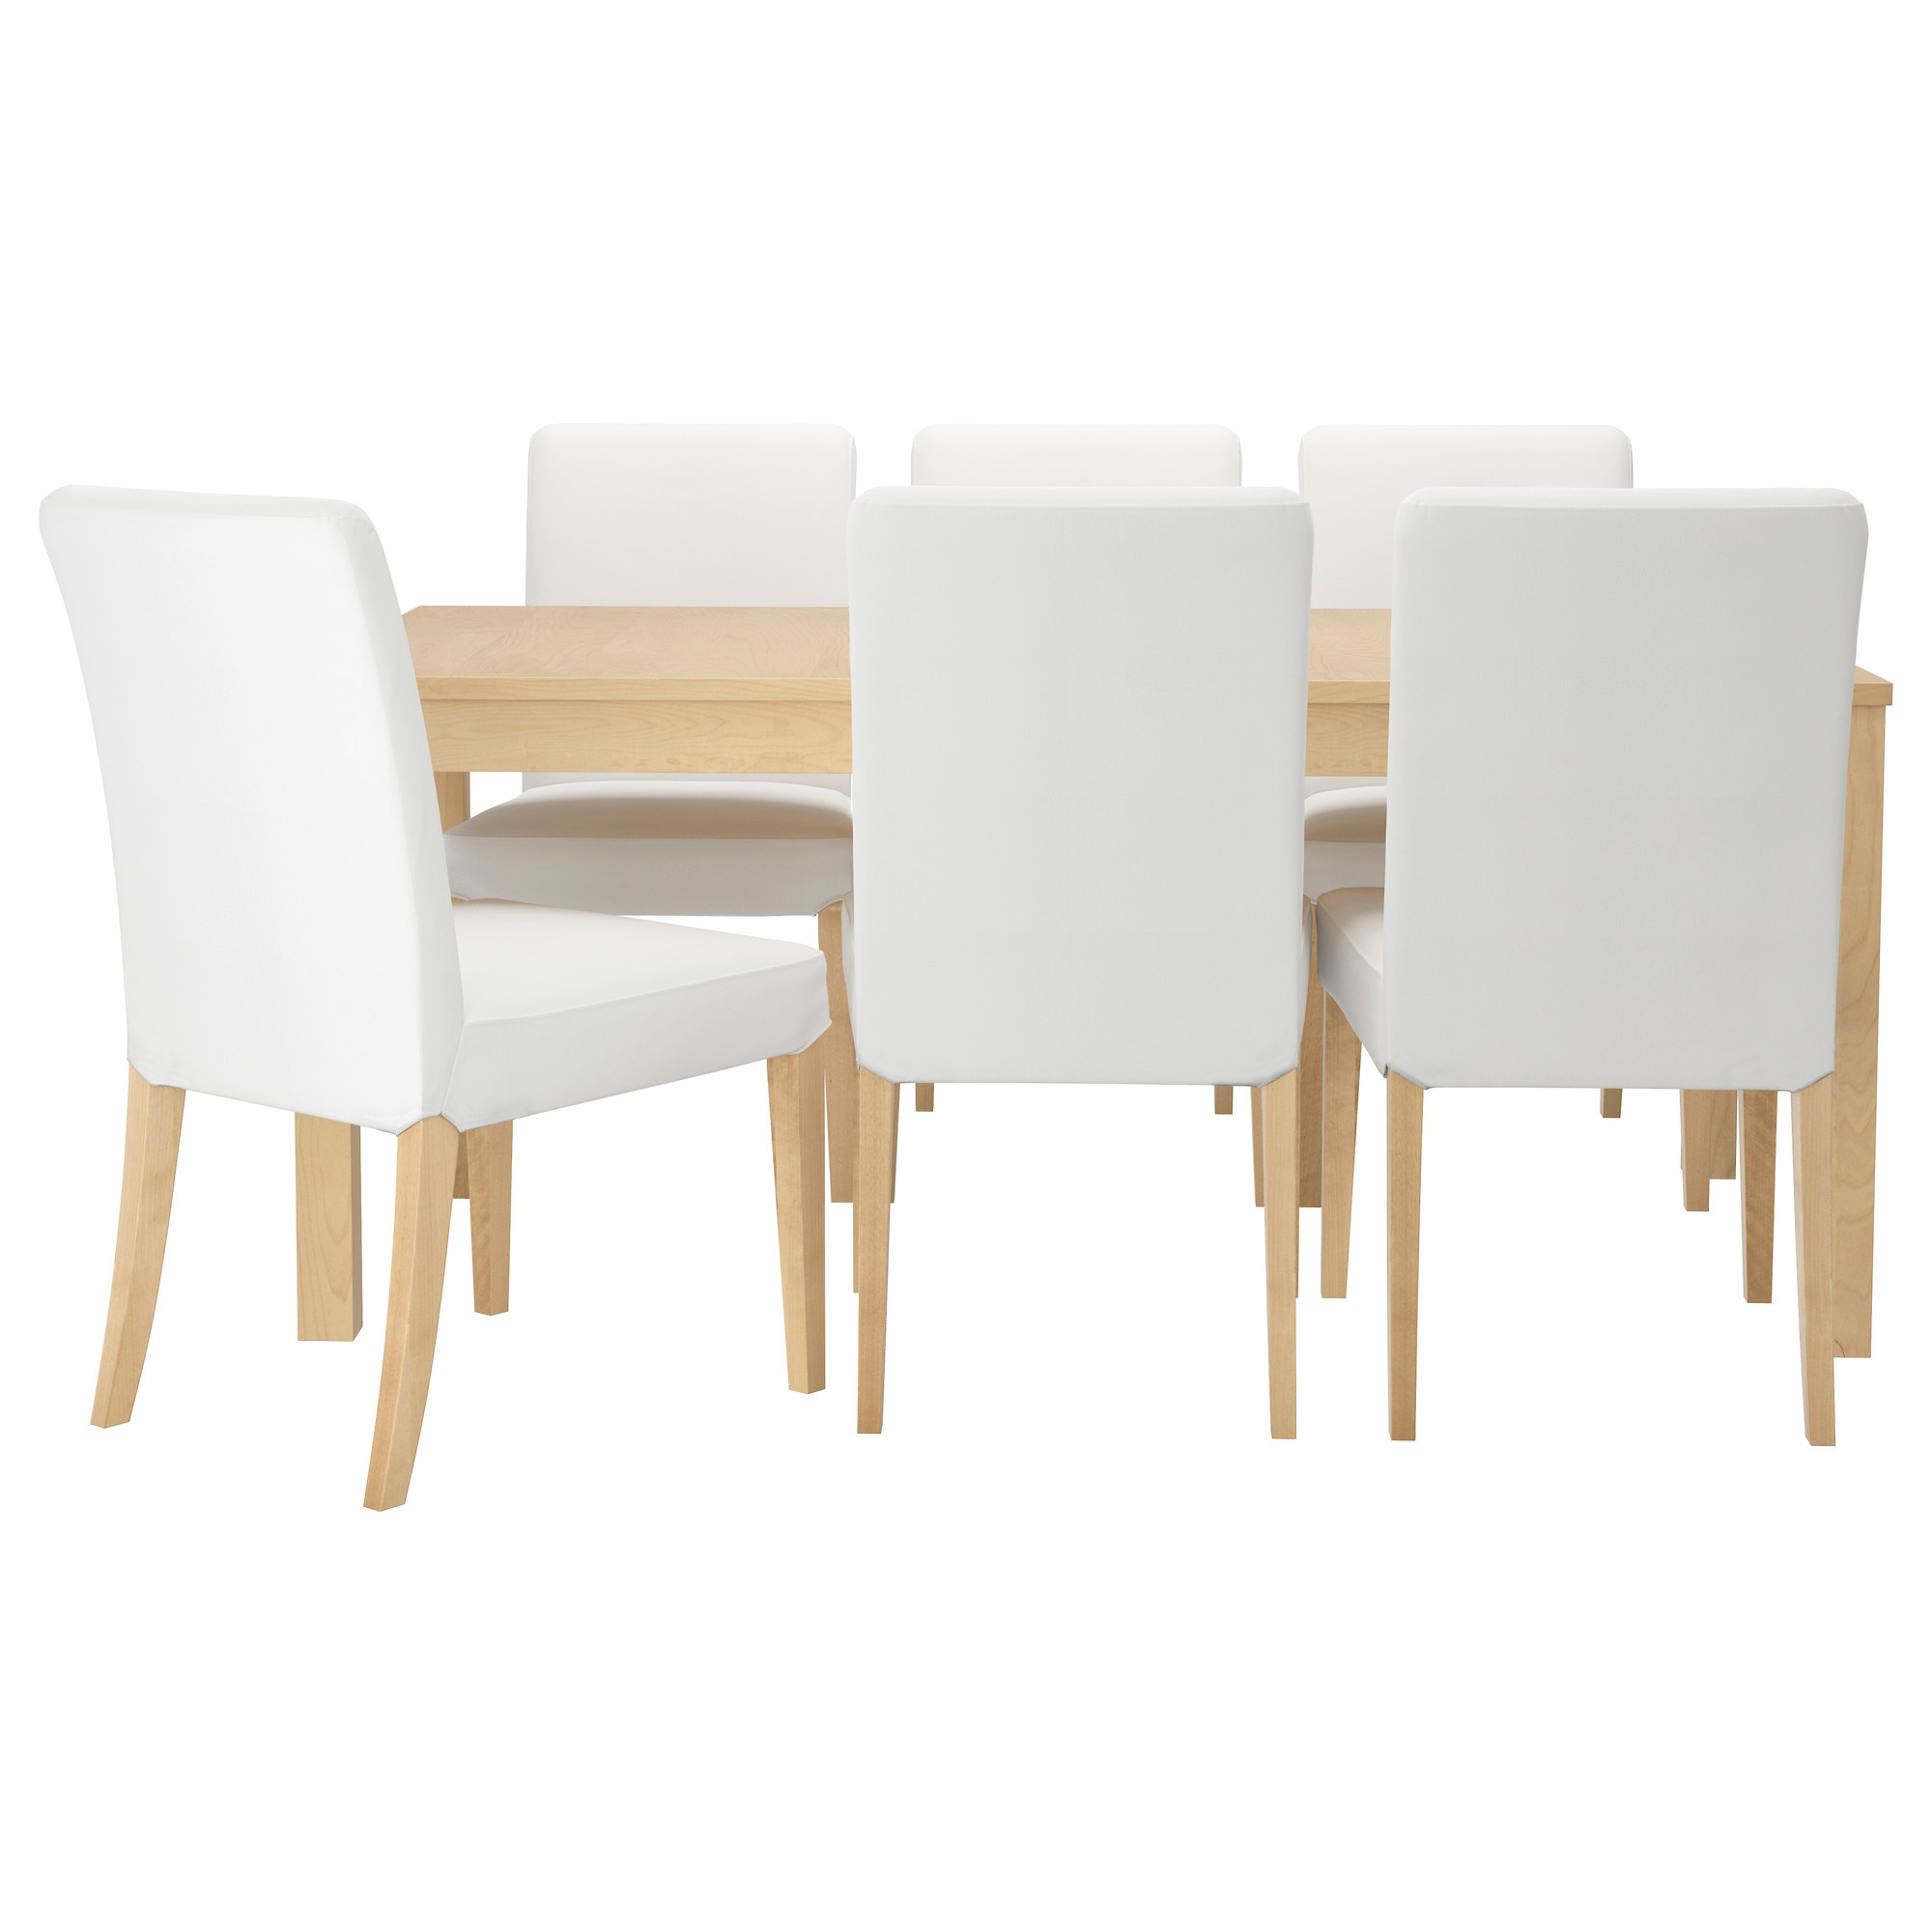 dining table seats 14 ikea. bjursta / henriksdal table and 6 chairs, birch veneer, gräsbo white length: 85 dining seats 14 ikea s